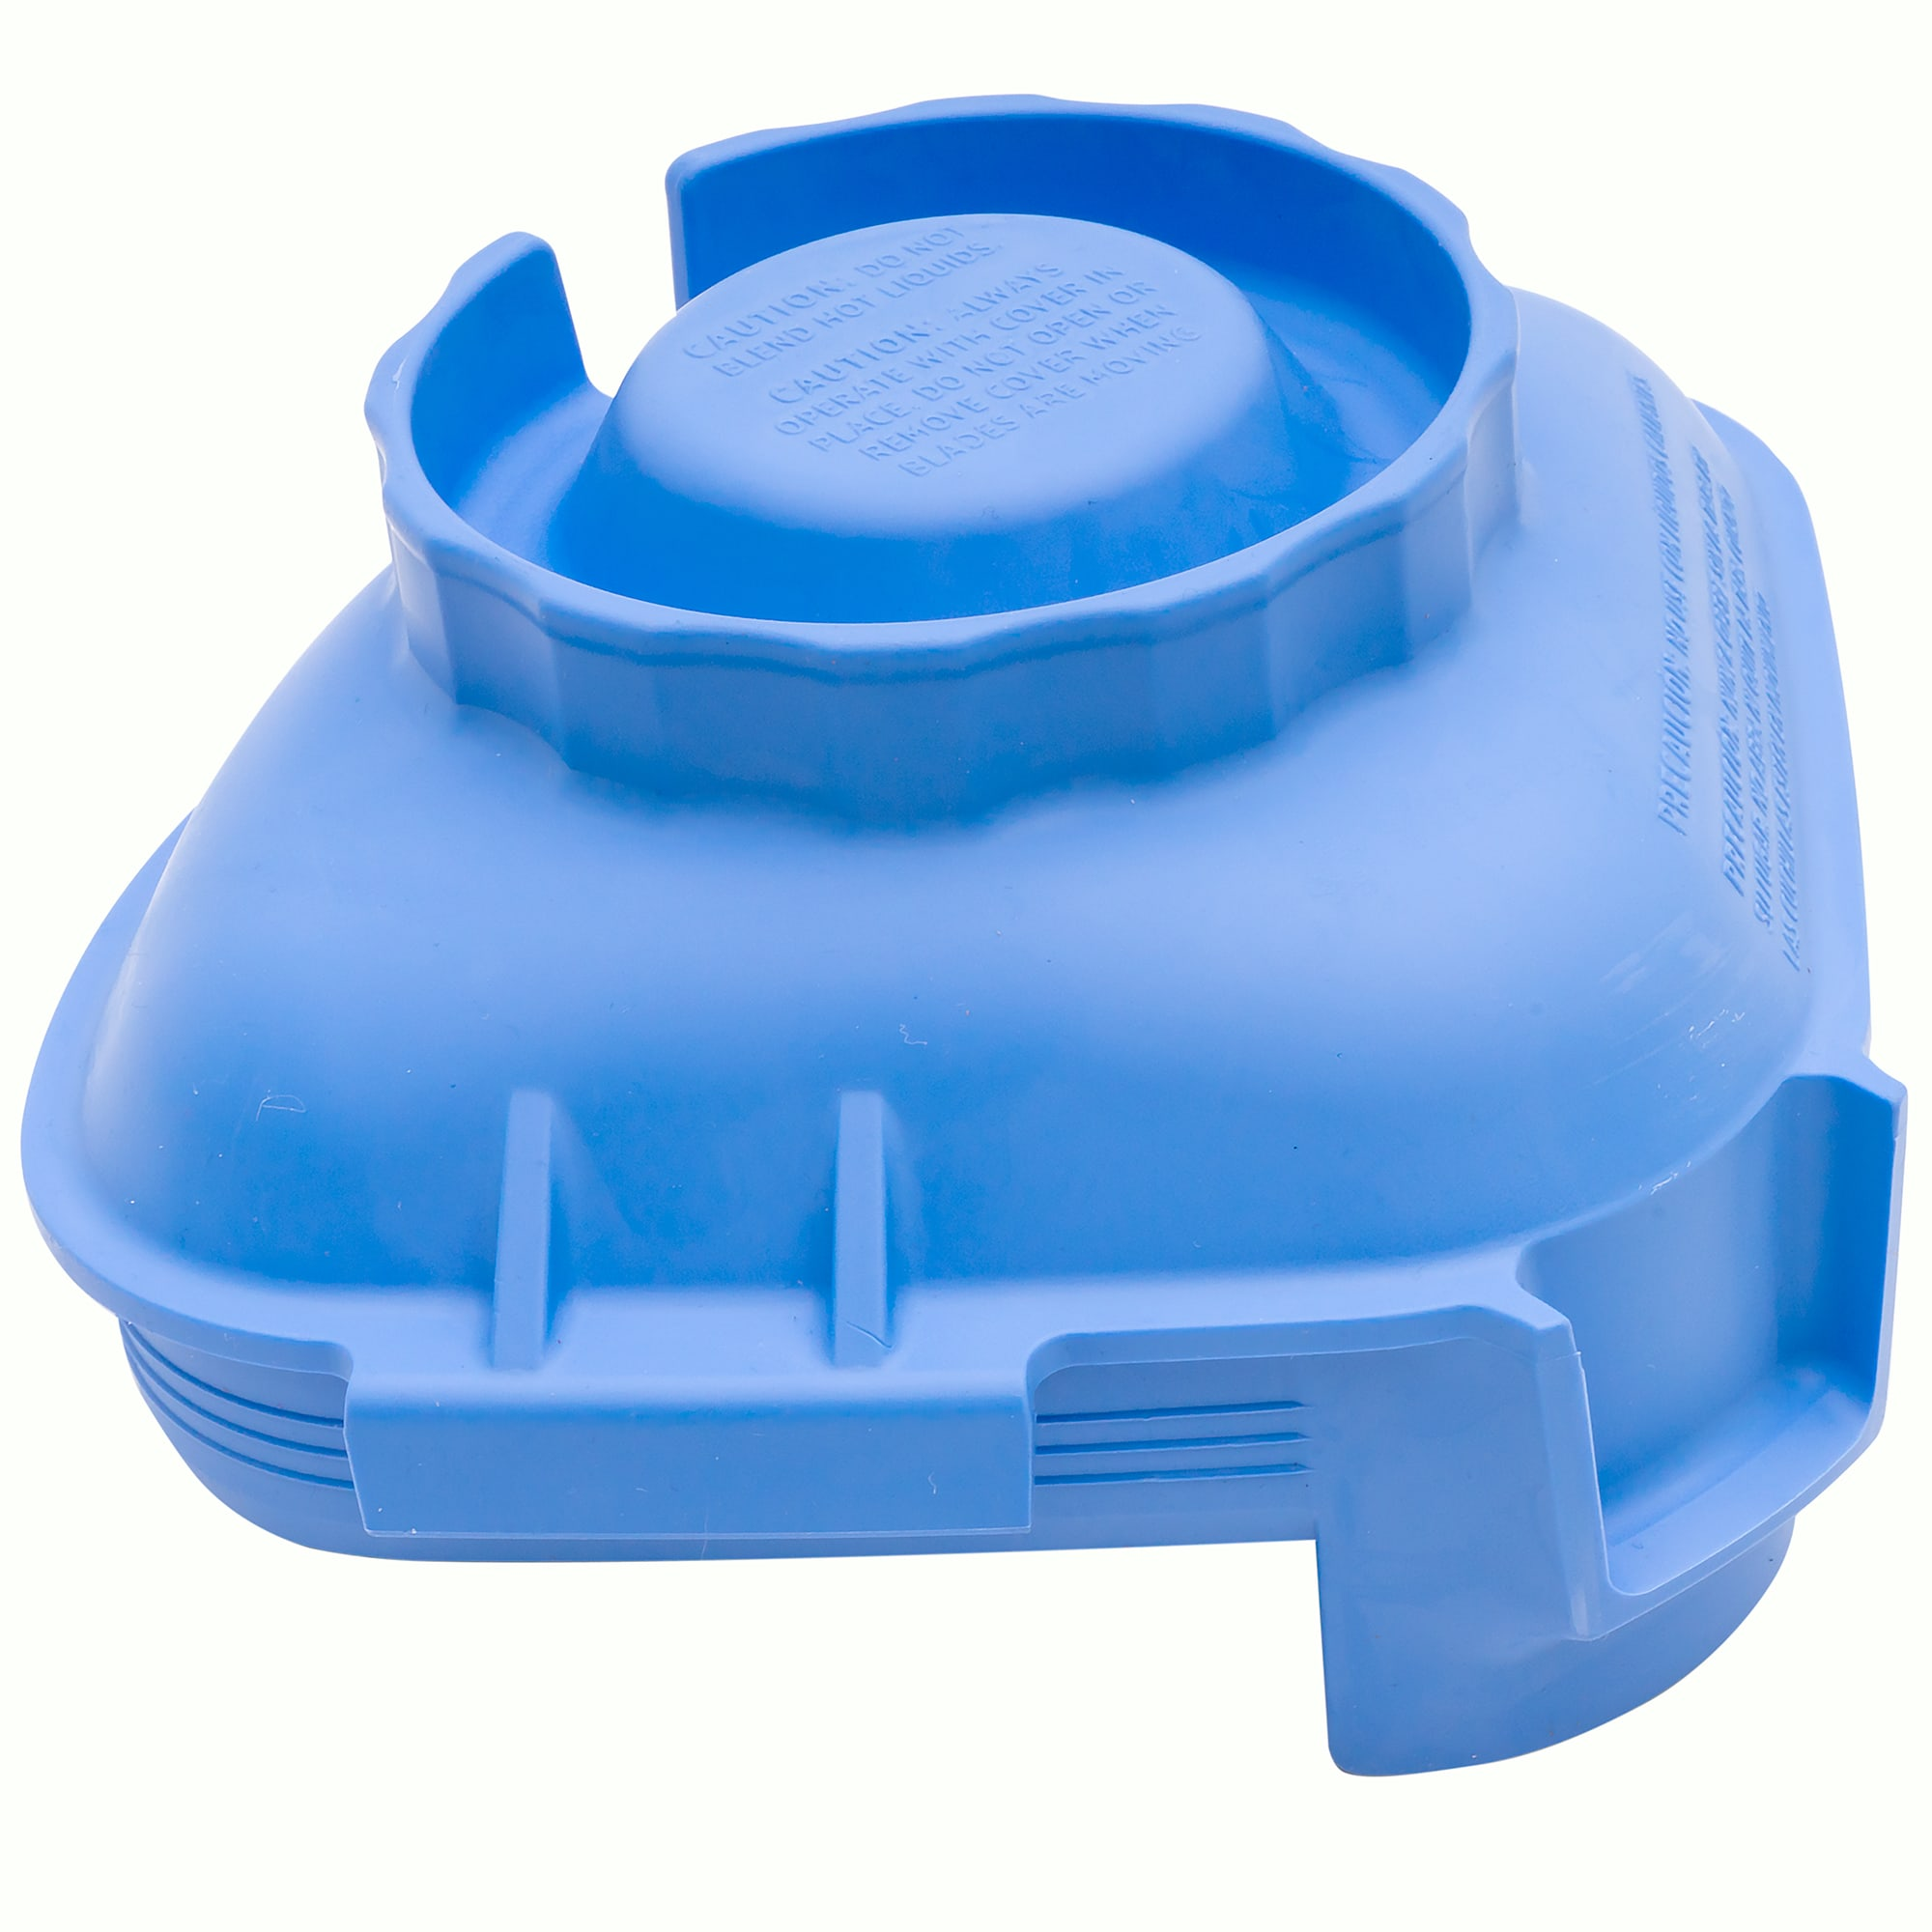 Vitamix Commercial 58992 Lid for Advance® Blender Containers - Rubber, Blue